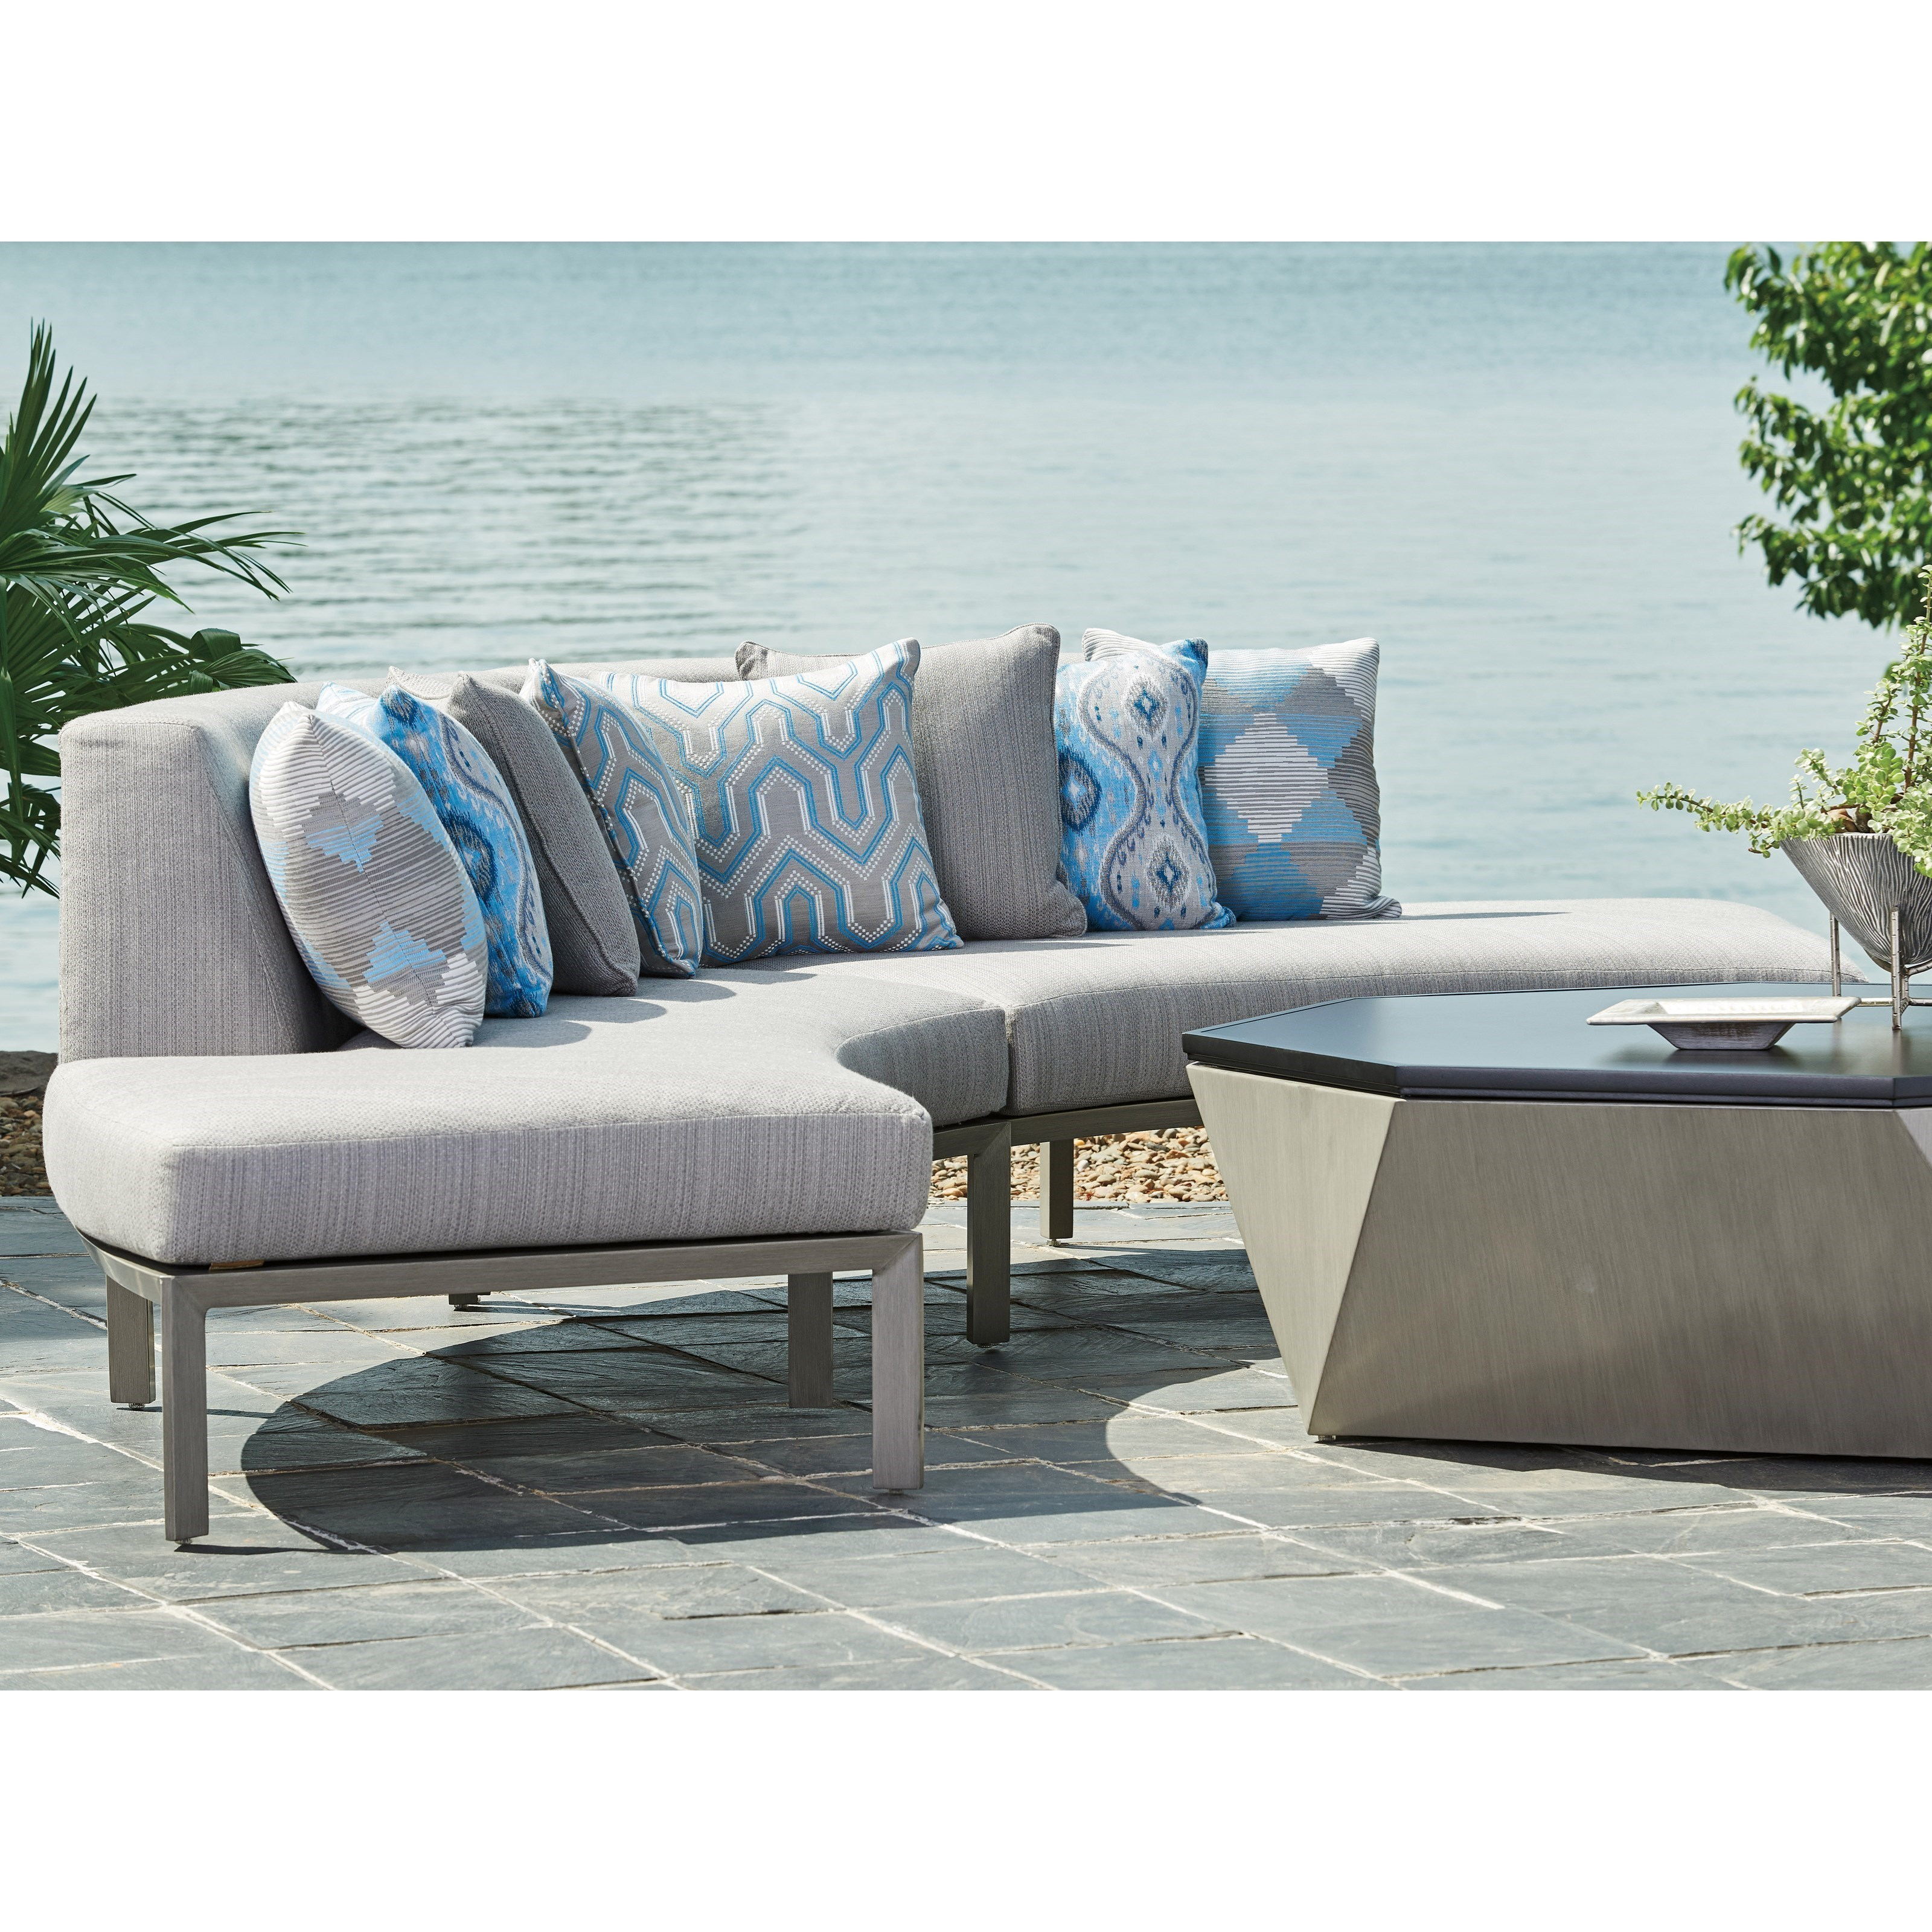 ... Tommy Bahama Outdoor Living Del Mar2 Pc Curved Sectional